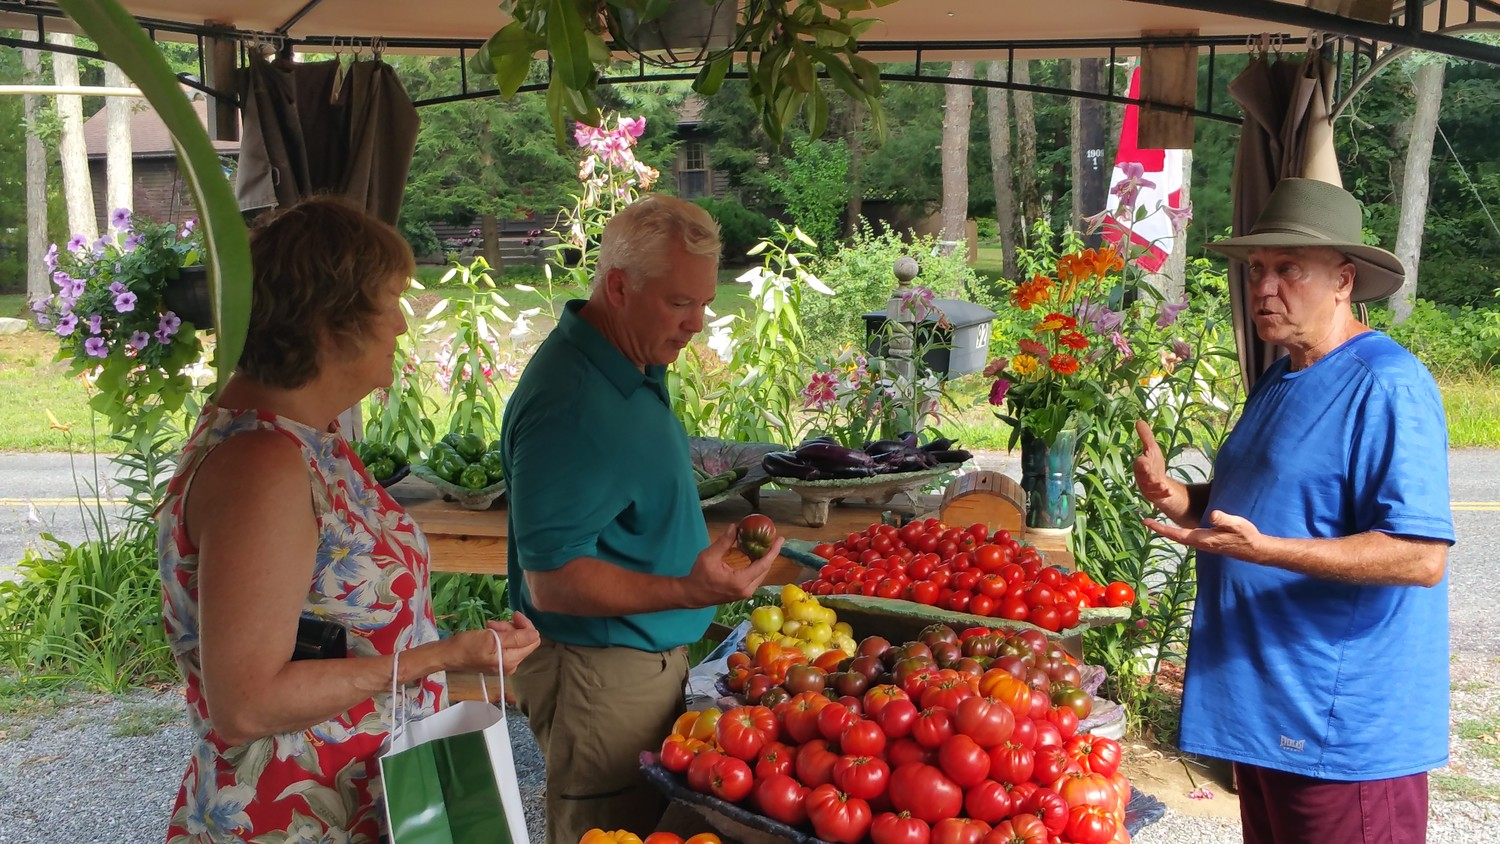 Bob serving some of his repeat customers for organic heirloom tomatoes